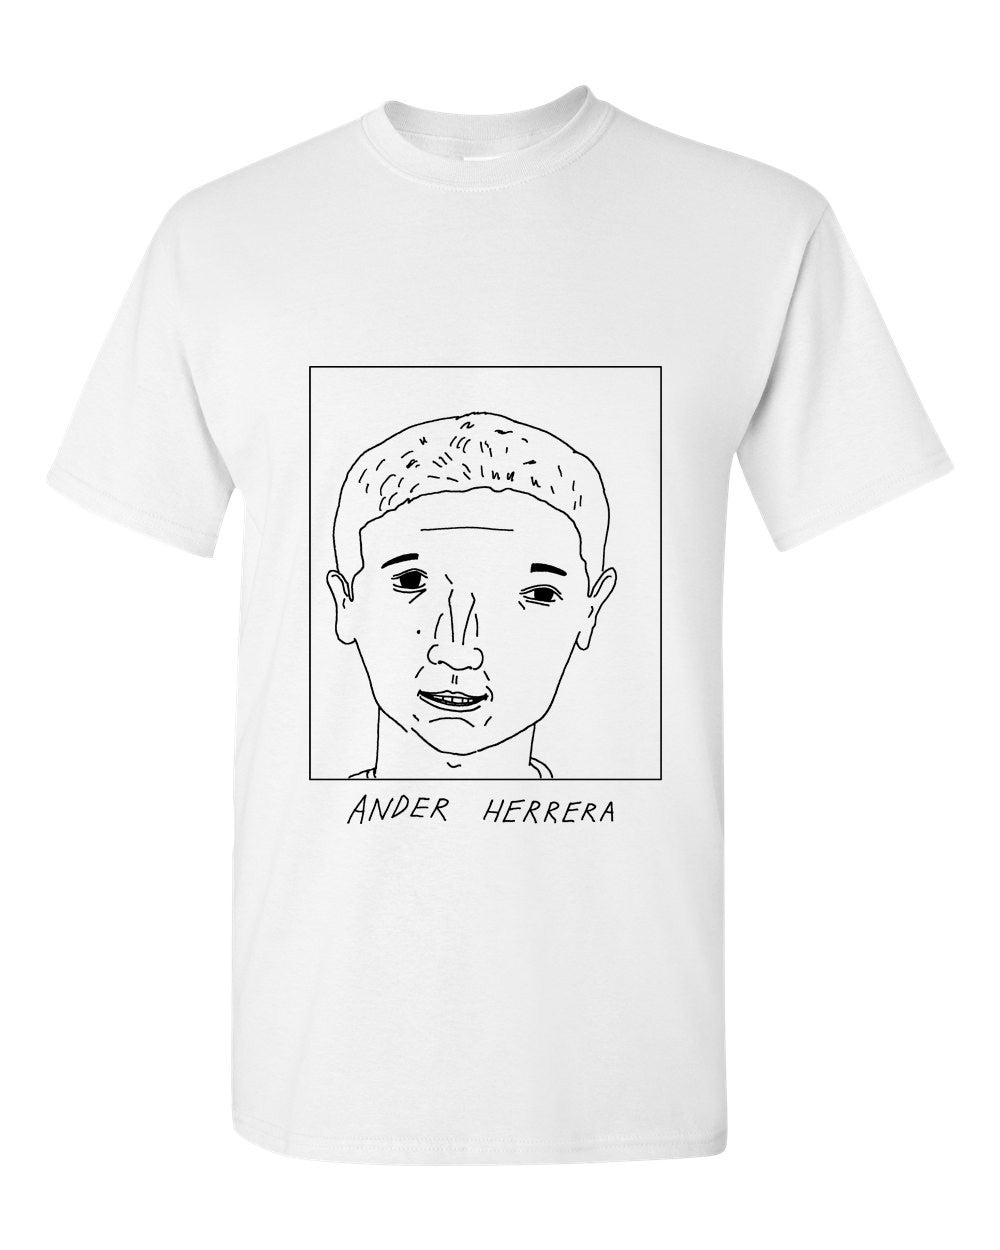 Badly Drawn Ander Herrera T-shirt